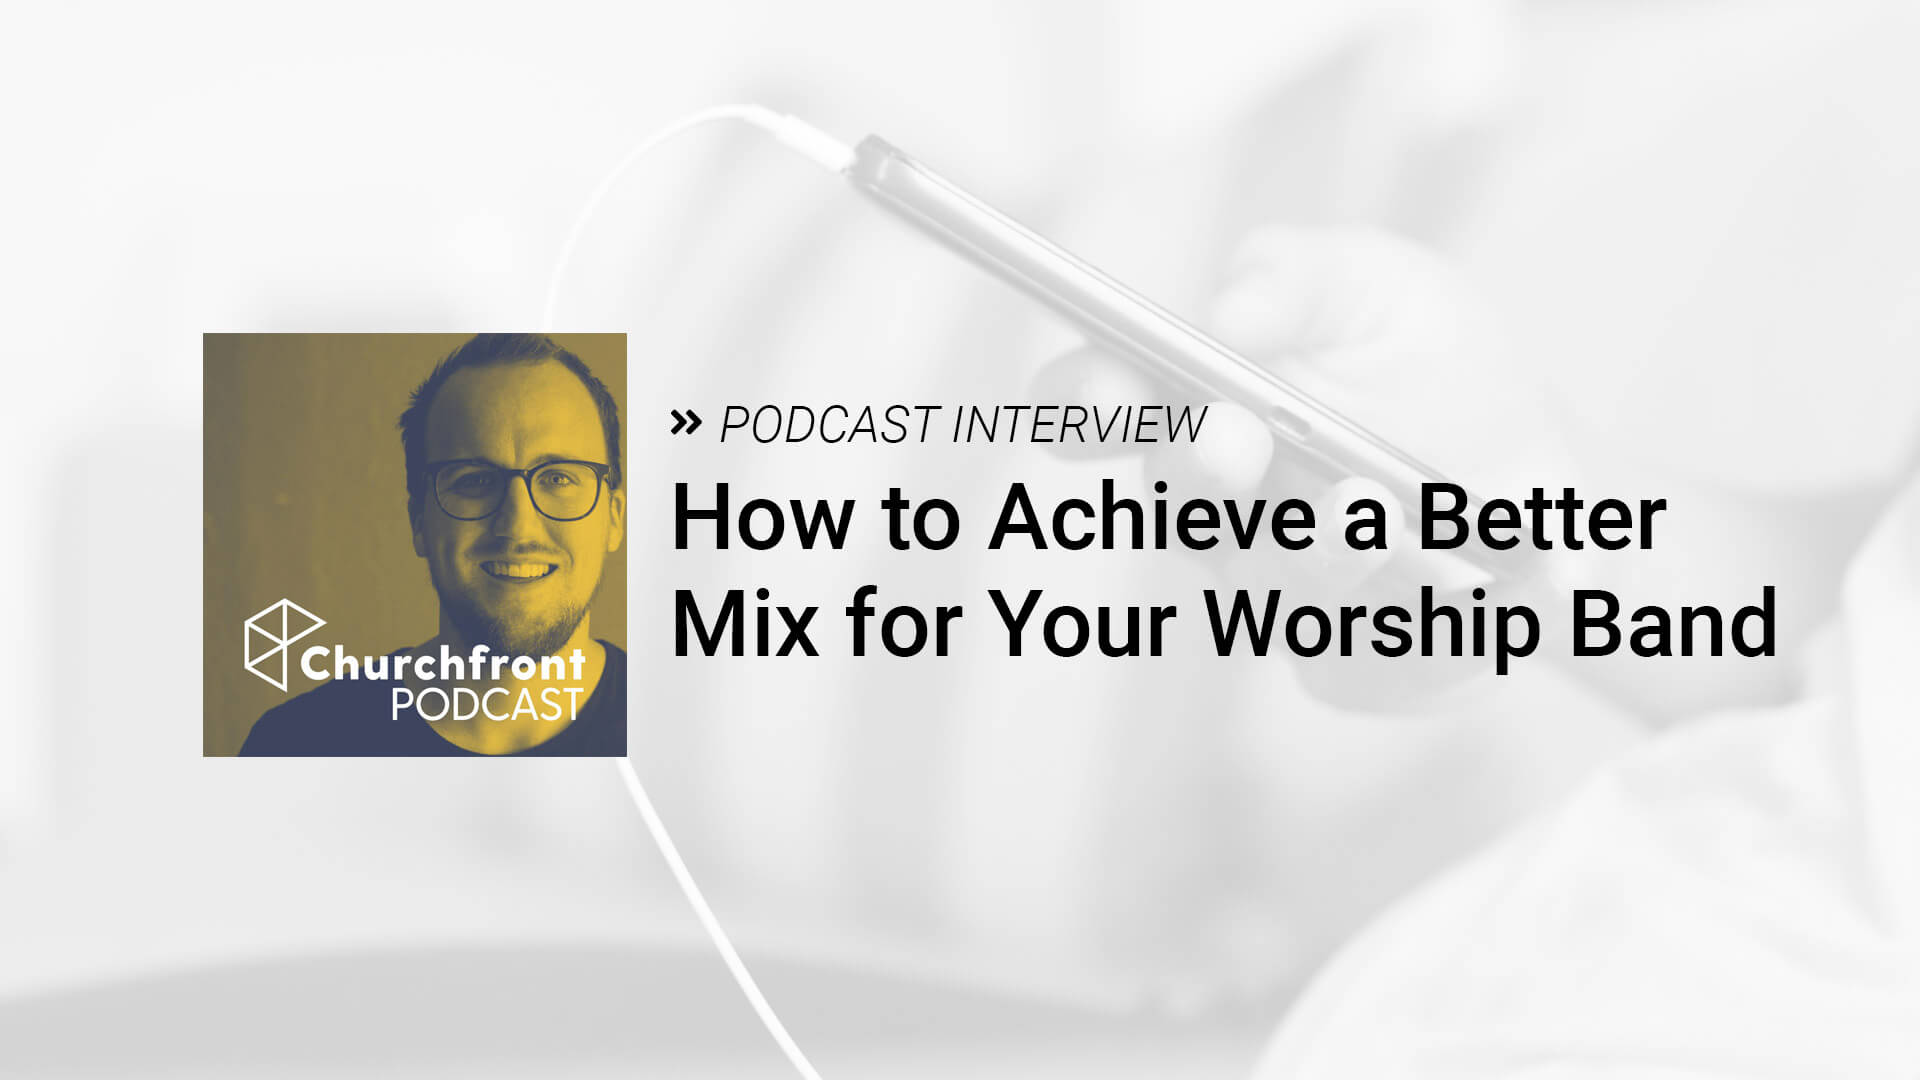 How to Achieve a Better Mix for Your Worship Band [Podcast]